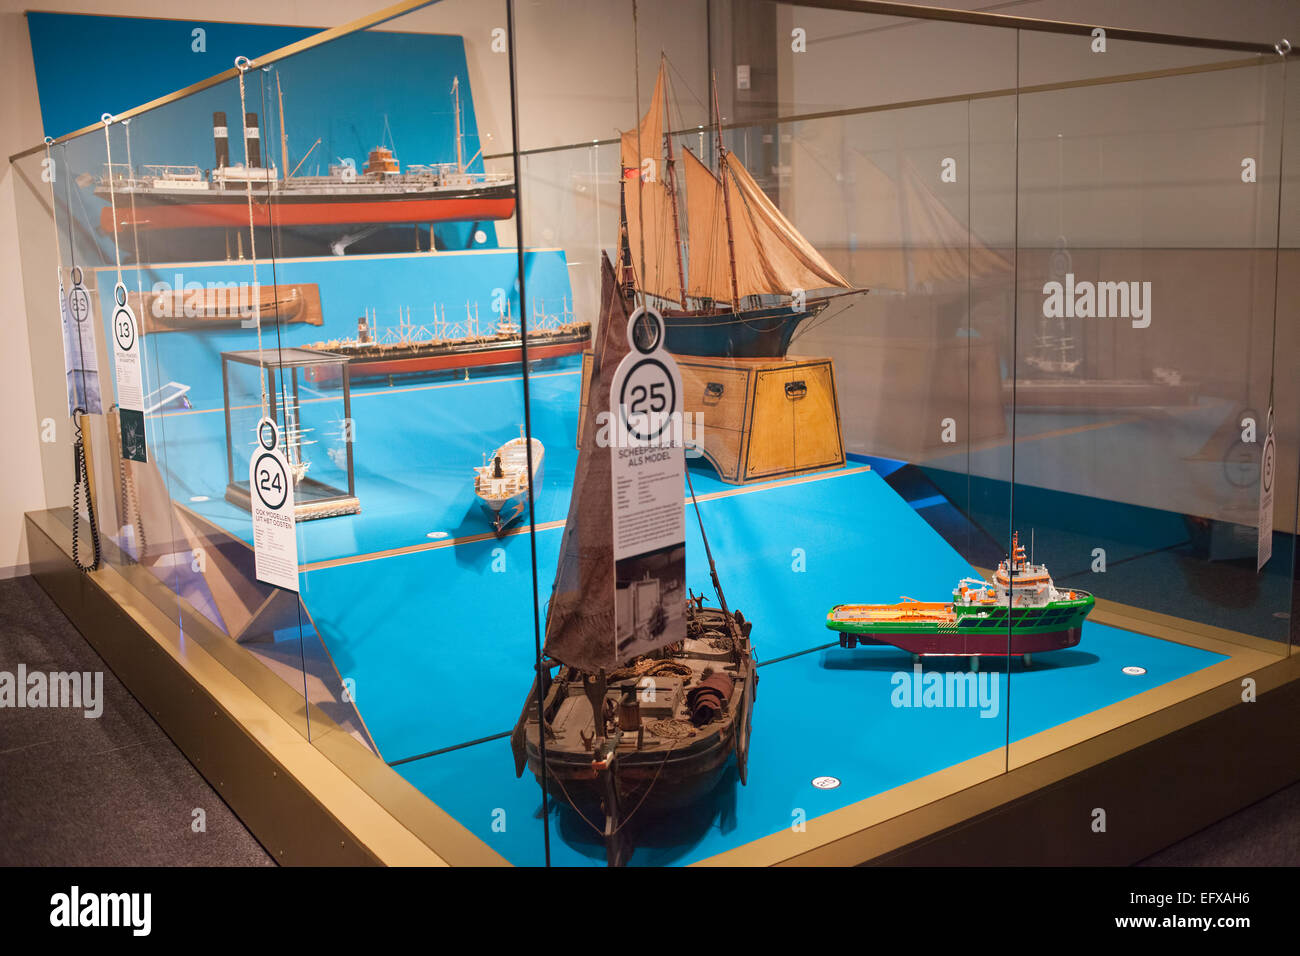 Ship models in Maritime Museum in Rotterdam, Holland, Netherlands. - Stock Image